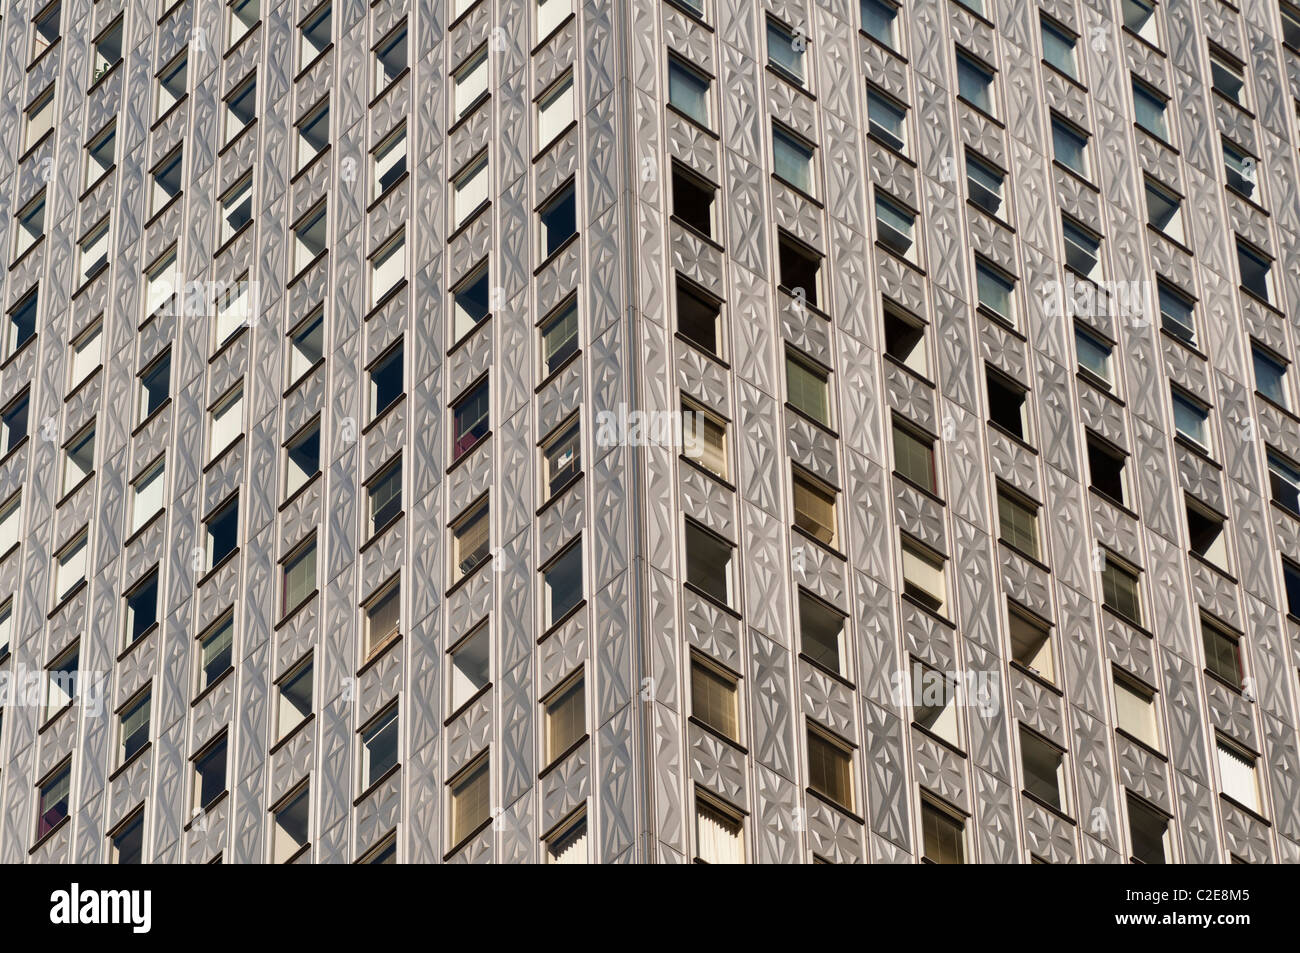 Steel, stainless, self cleaning geometrical pattern facade of Mobil Building, Manhattan, New York City, USA - Stock Image